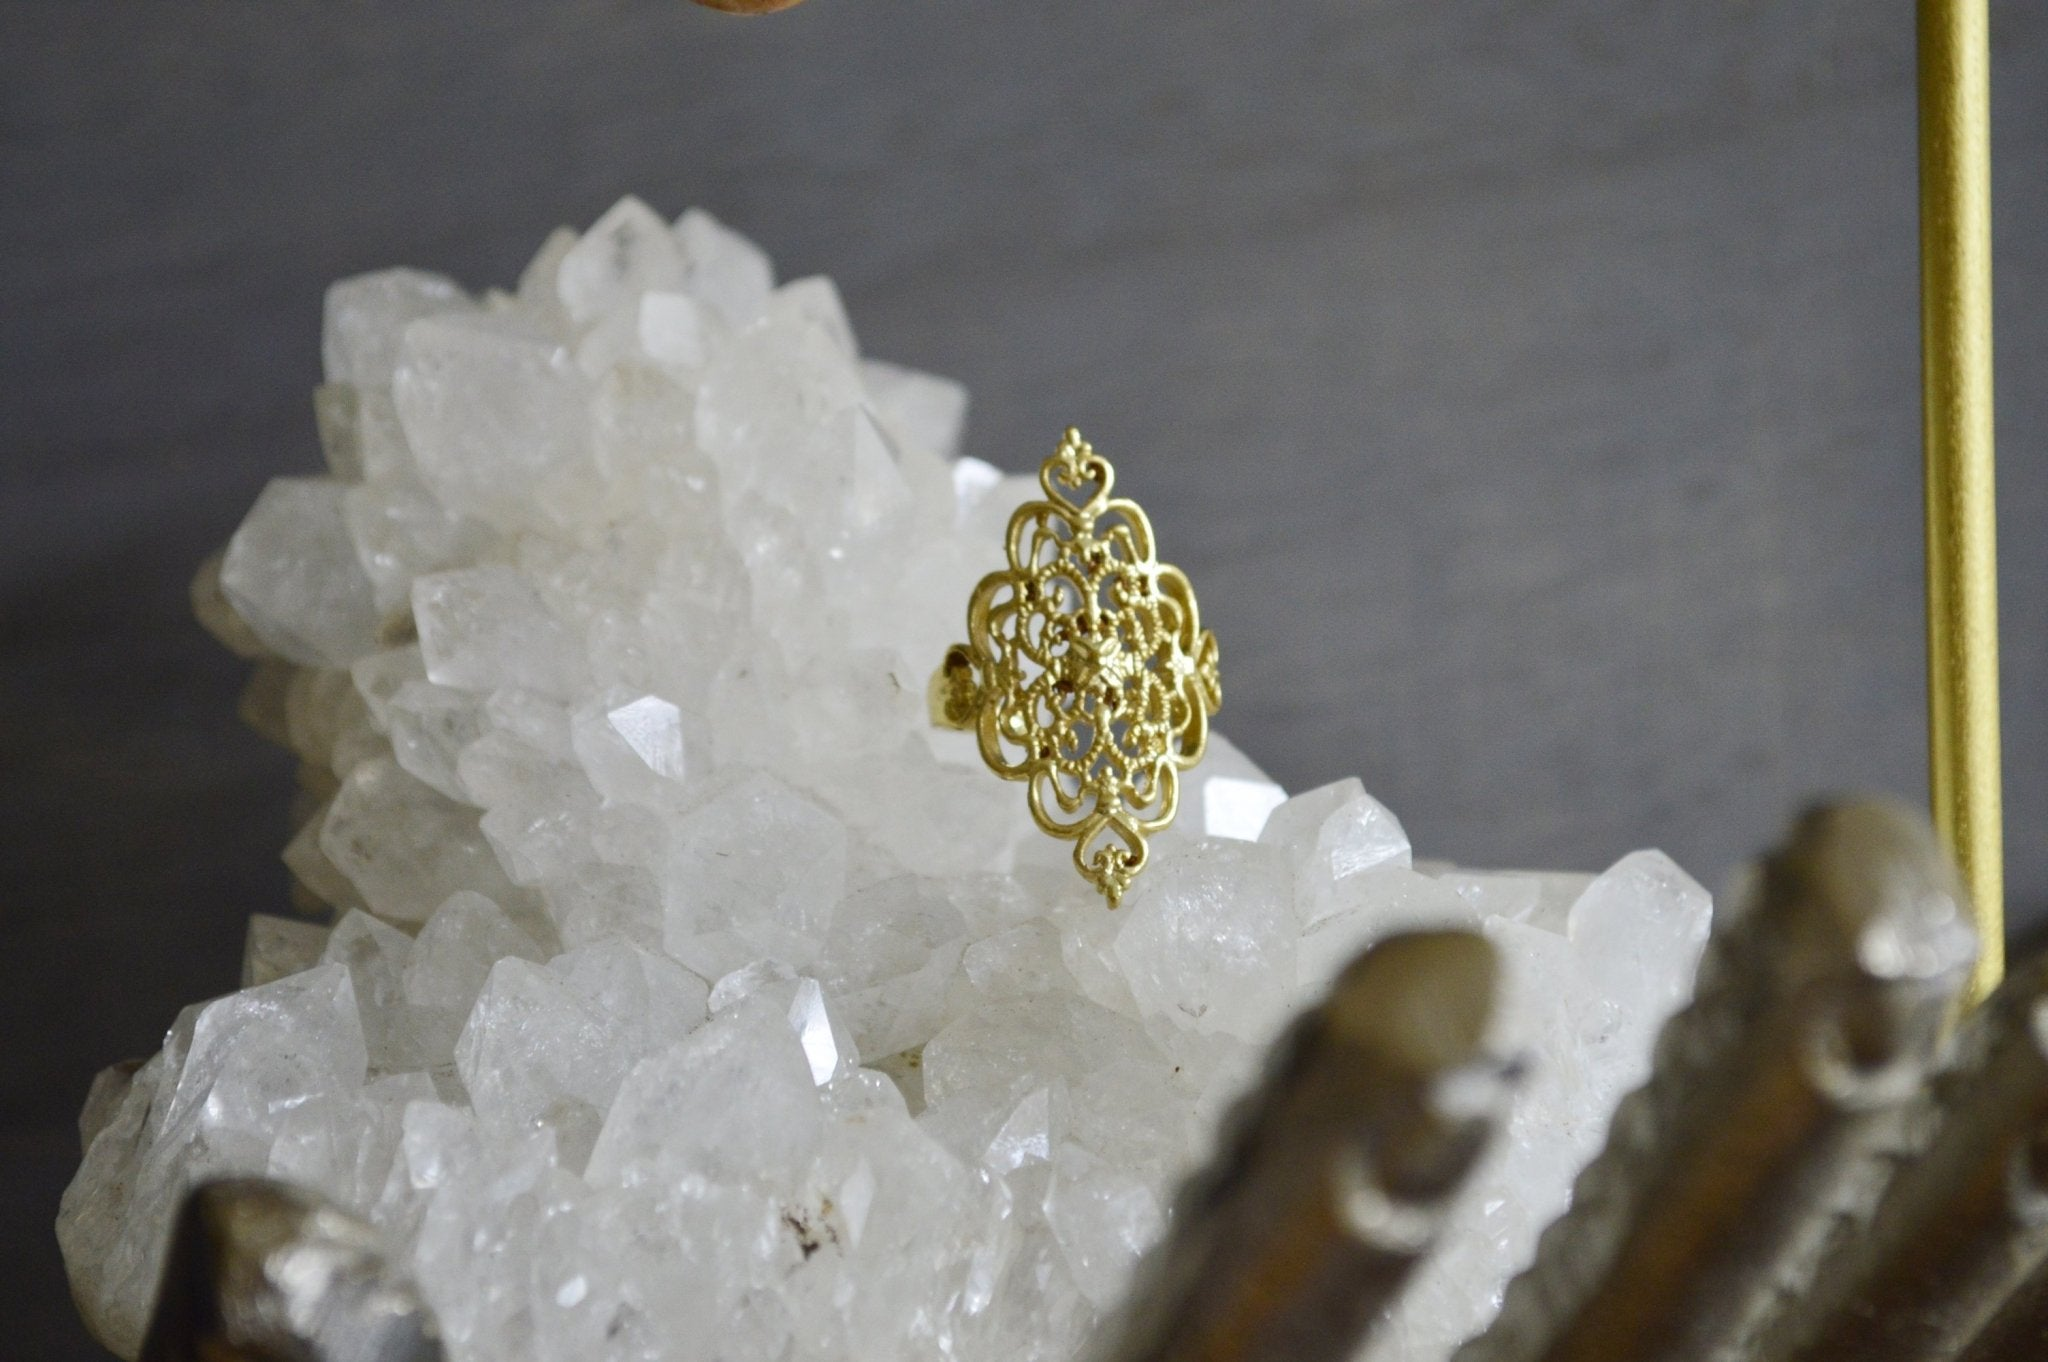 Filigree Brass Ring - We Love Brass